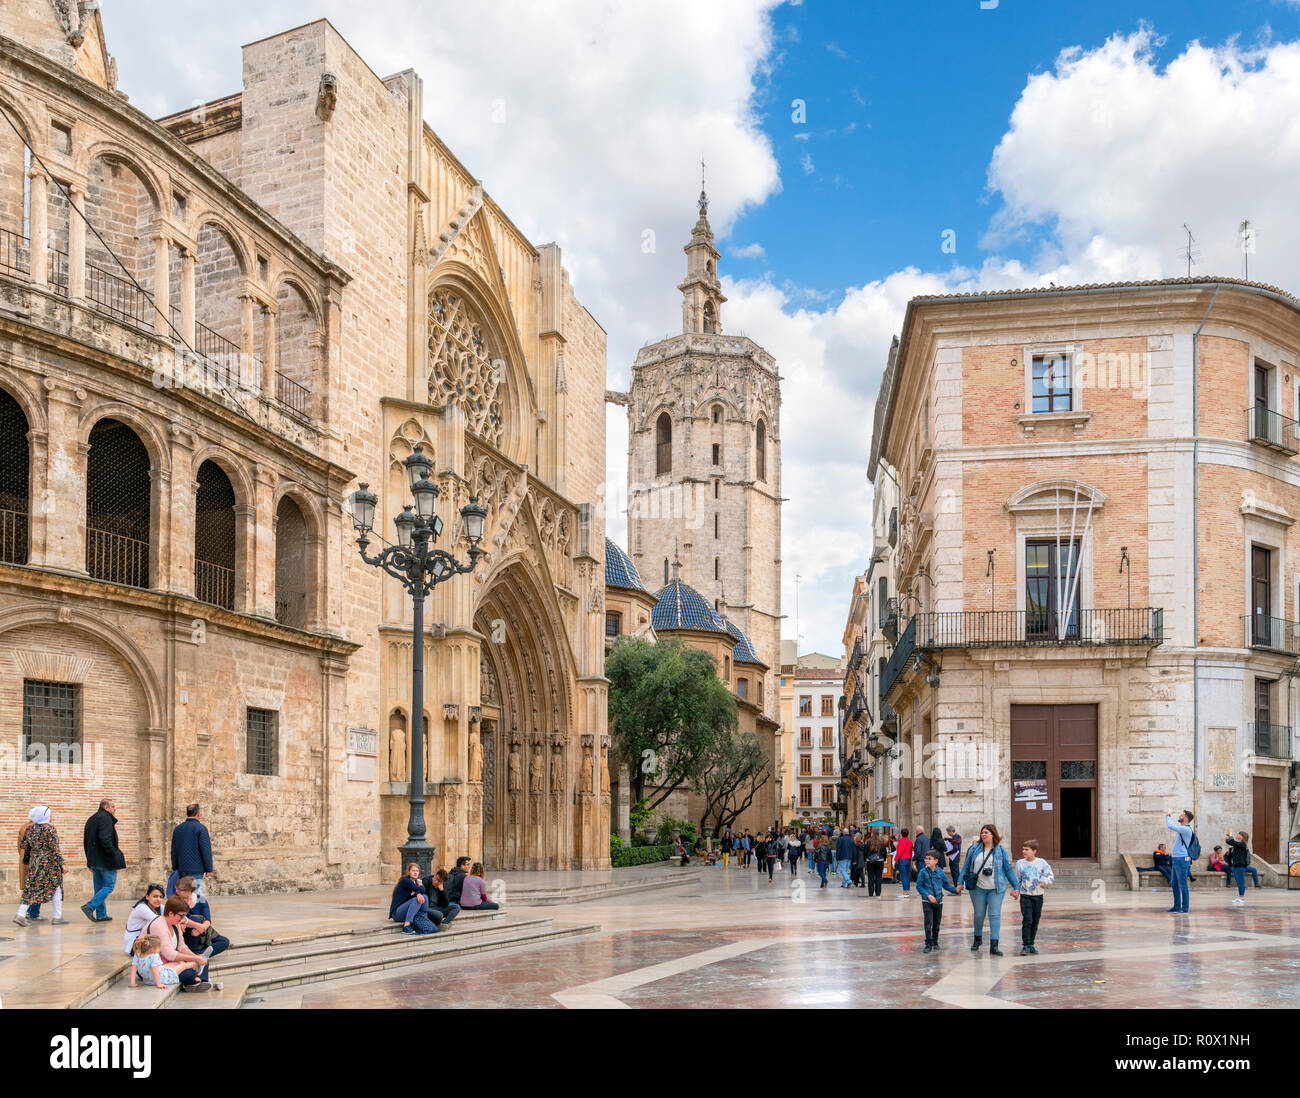 Miguelete Tower and Valencia Cathedral from Placa de la Mare de Deu (Plaza de la Virgen), Valencia, Spain Stock Photo